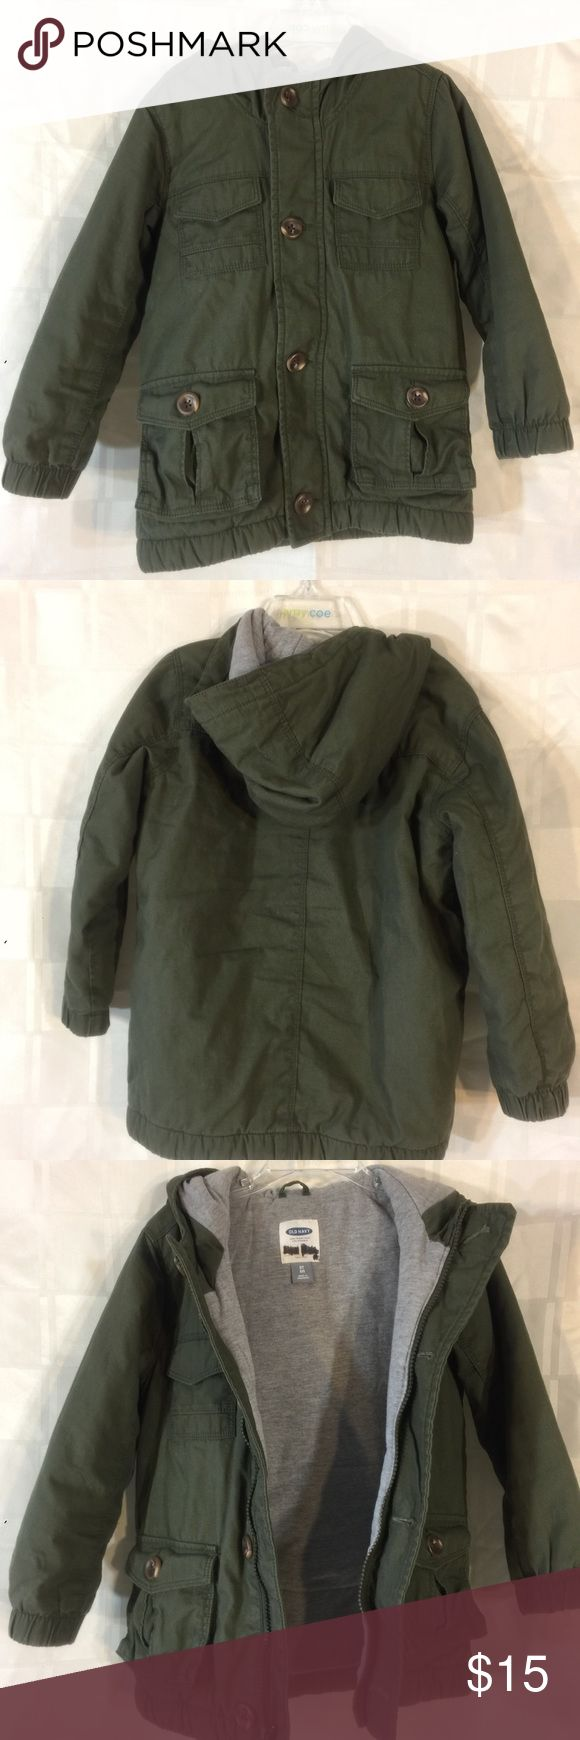 Army Greet, Jersey Cotton Lined Jacket Old Navy, name crosses out of the inside.  It's a really nice, warm jacket for spring/fall.  Very soft inside and the fabric on the outside shows no wear. Old Navy Jackets & Coats